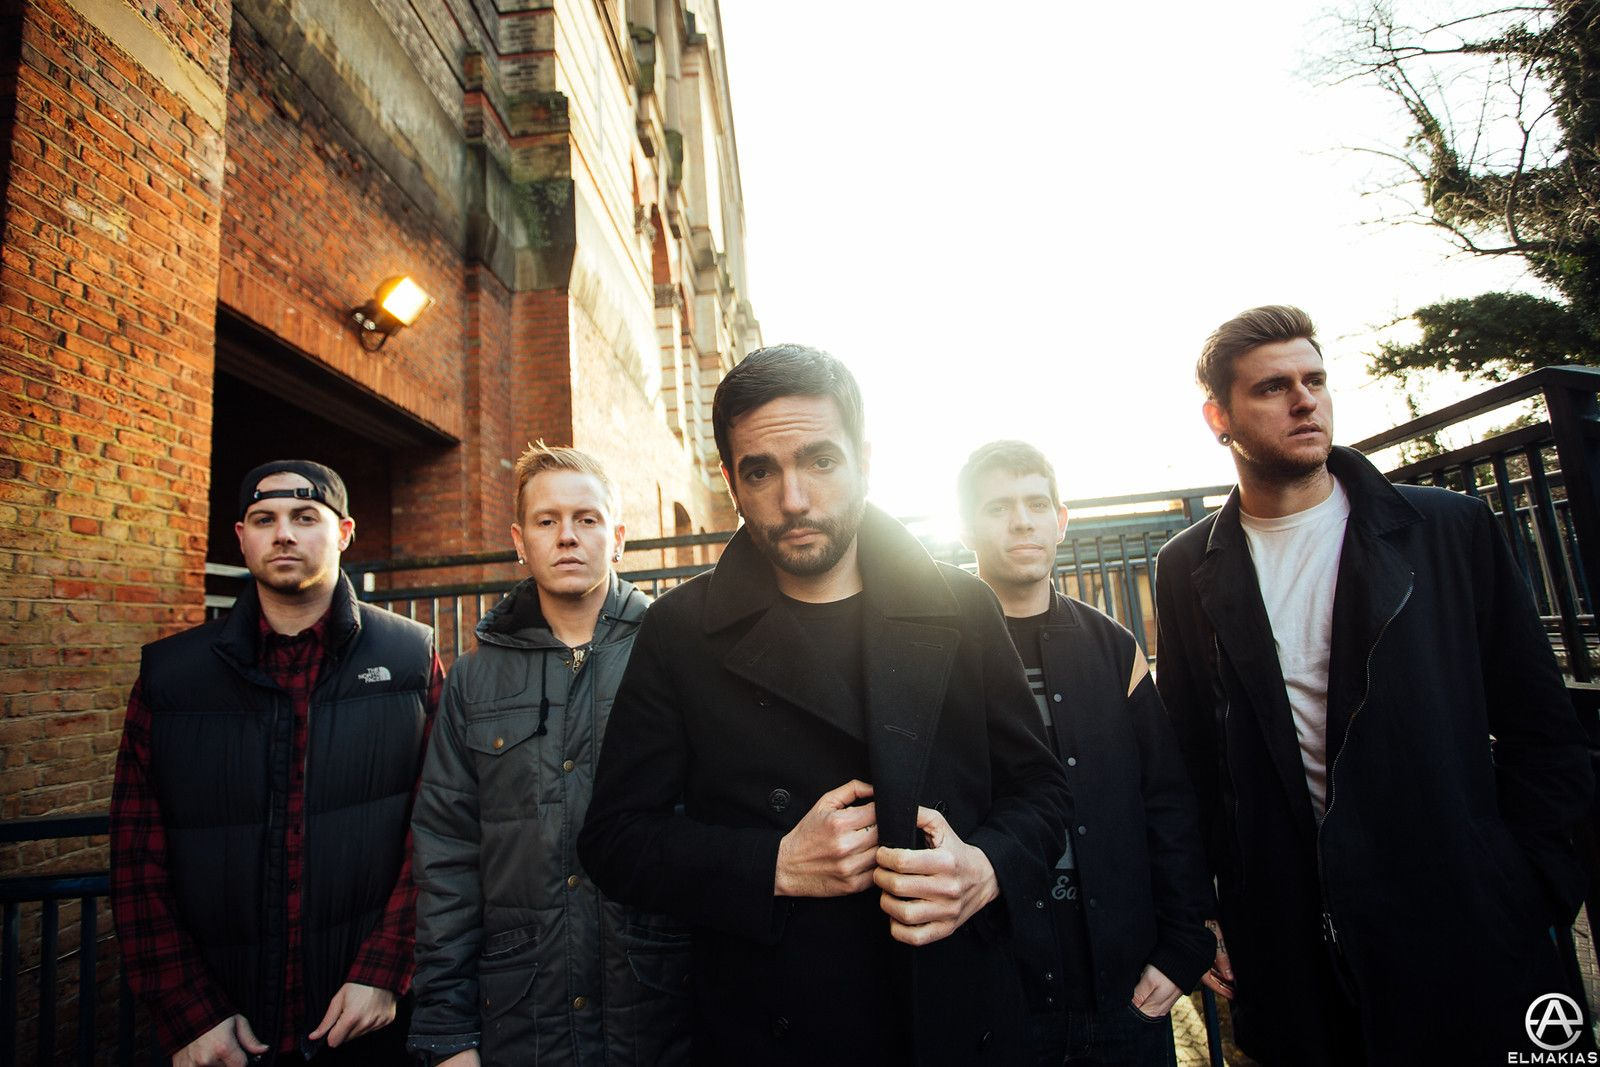 A day to remember at alexandra palace by alexandra palace a day to remember at alexandra palace in london full set http voltagebd Choice Image